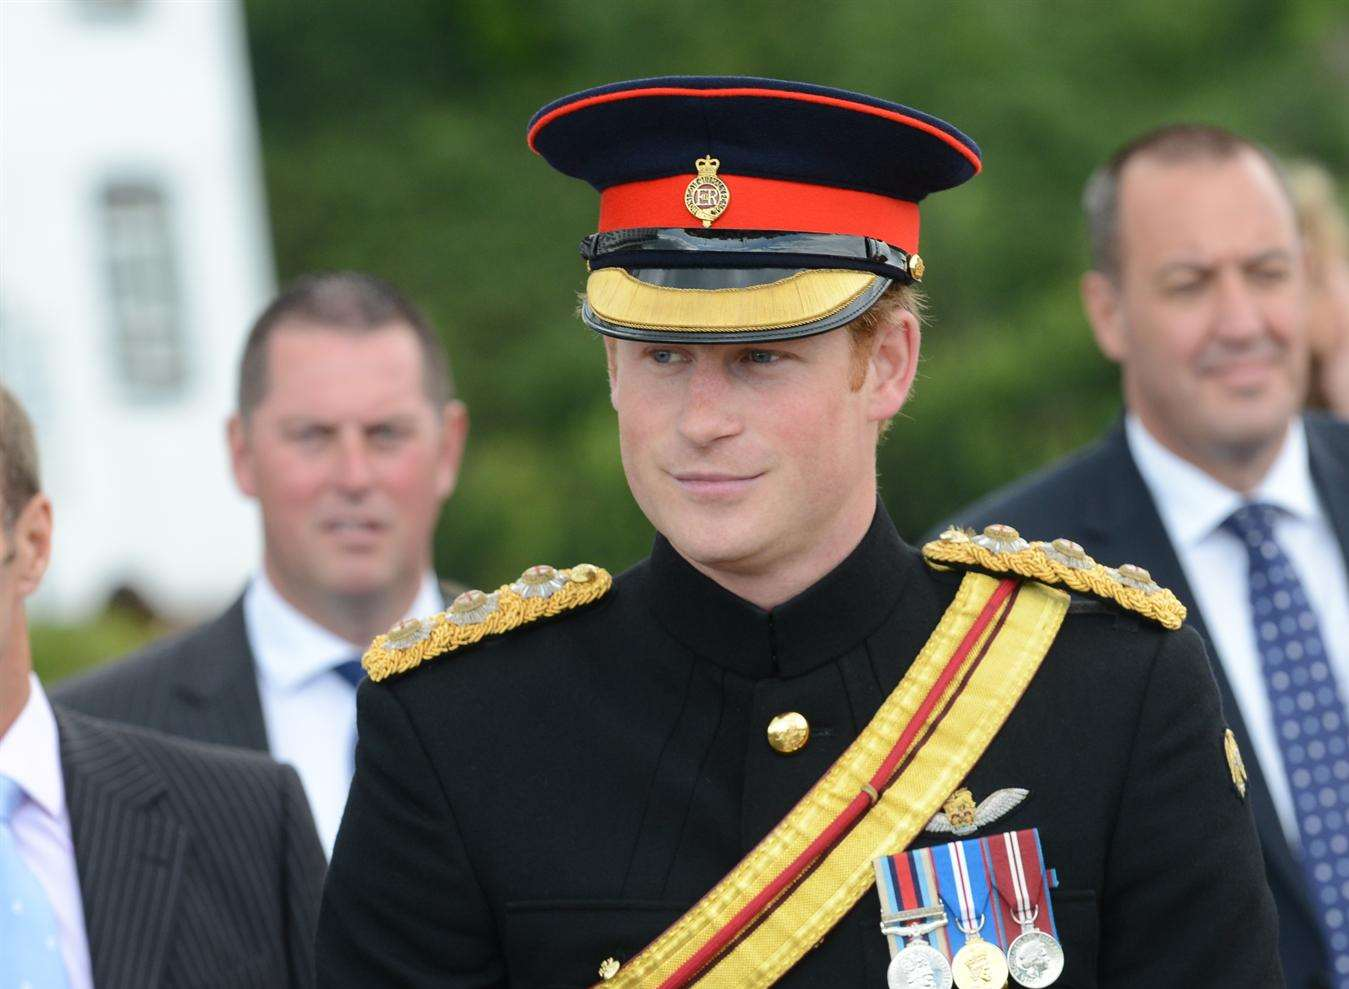 Prince Harry at the WW1 centenary commemoration at Folkestone harbour last year